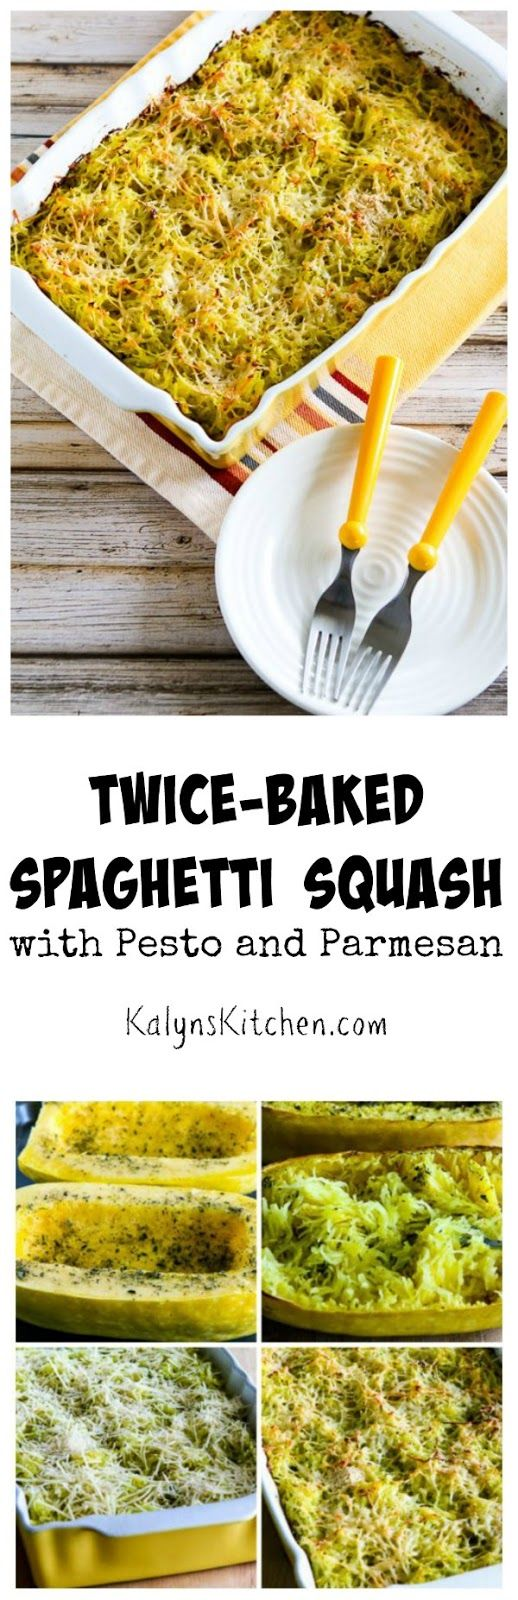 Twice-Baked Spaghetti Squash with Pesto and Parmesan is a perfect side dish for fall or winter.  (Low-Carb, Gluten-Free) [found on KalynsKitchen.com]